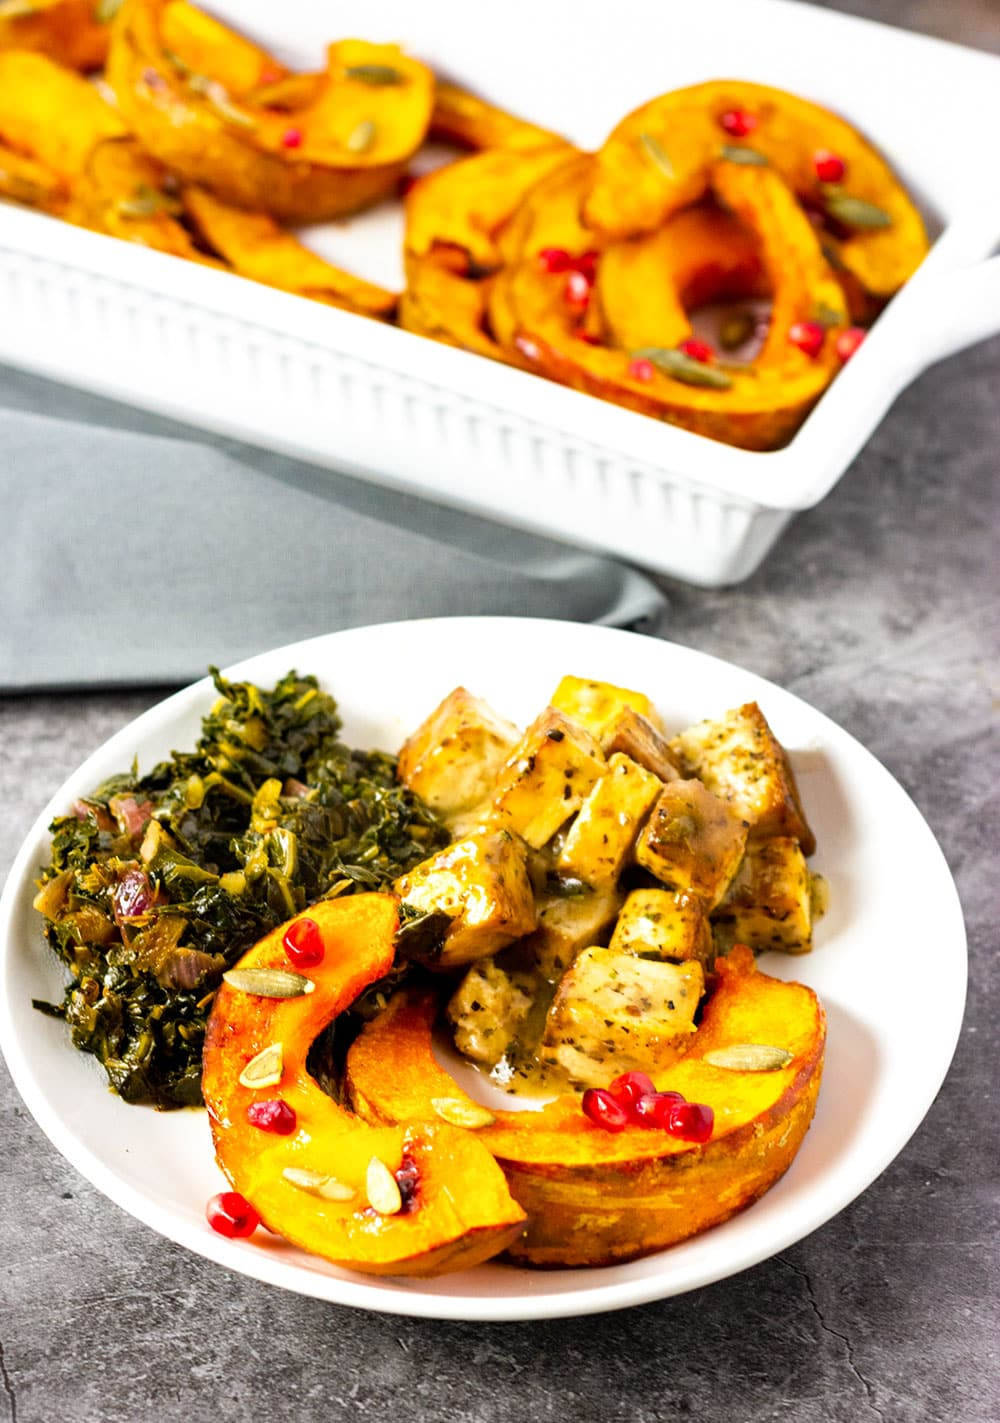 roasted kabocha squash in a white plate with collard greens and smothered tofu on a marbled background